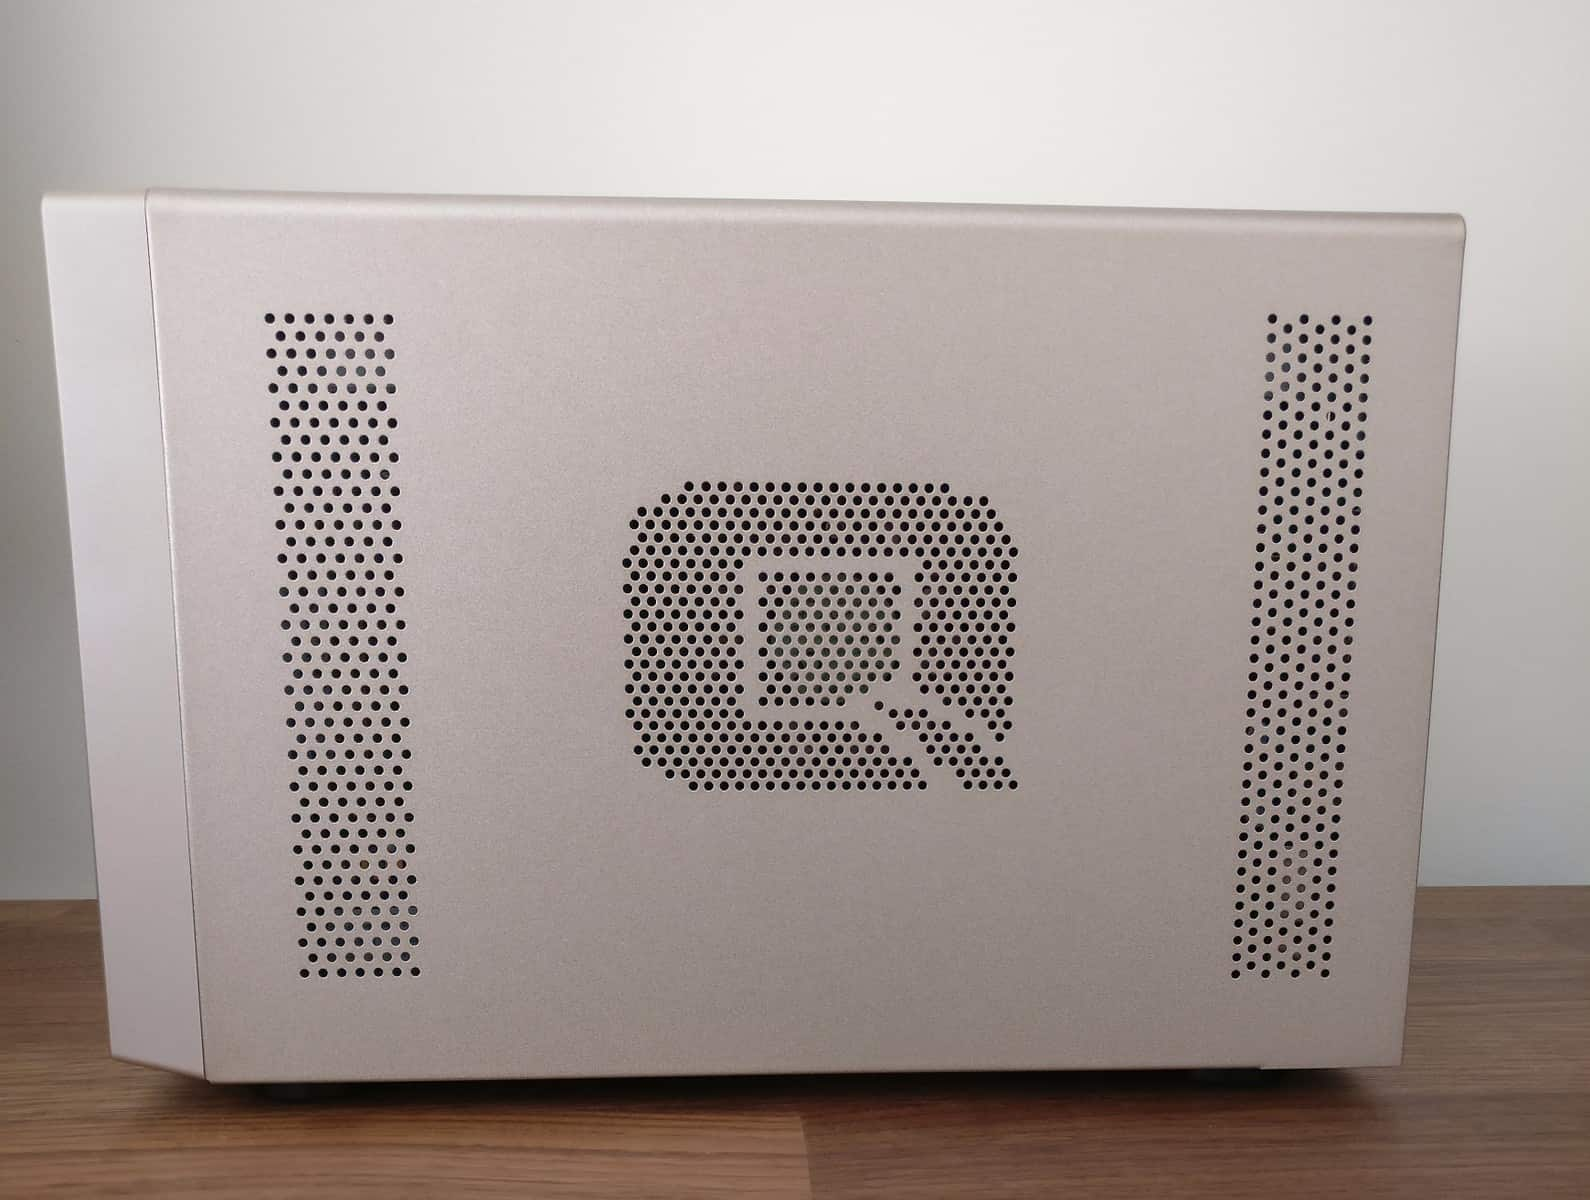 QNAP-TVS-473-Photos-20 QNAP TVS-473 4-Bay NAS Review